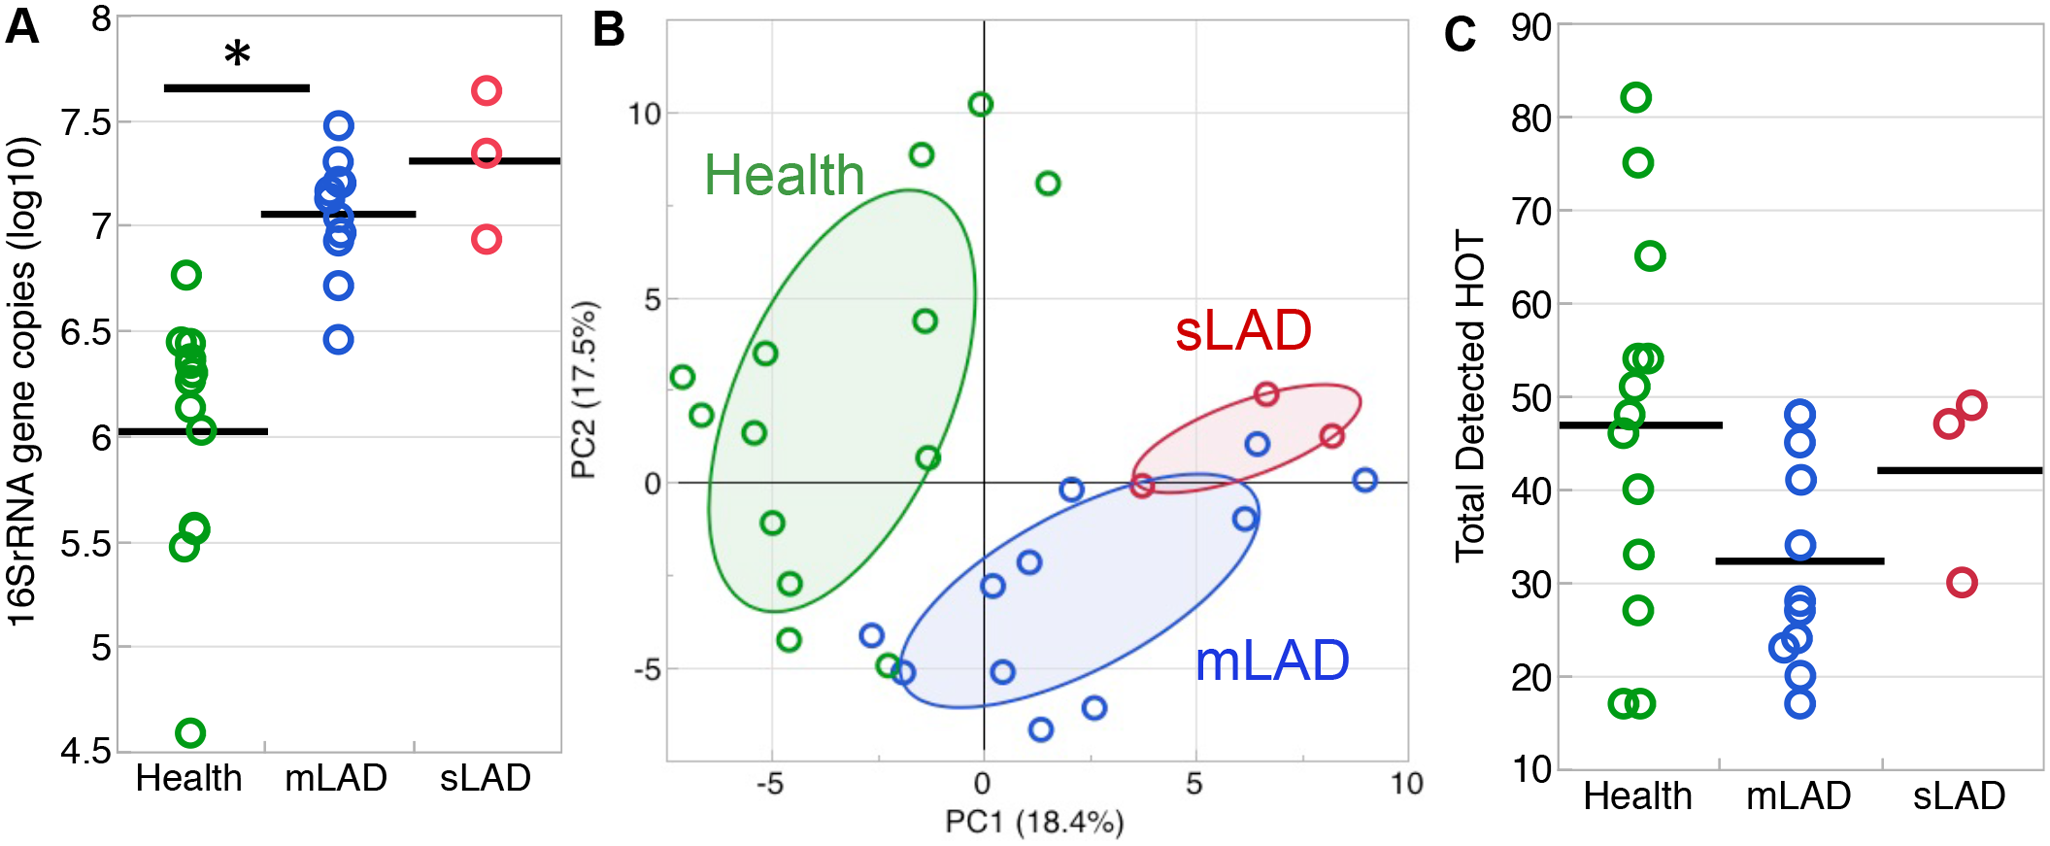 Microbial load and diversity of LAD-1 subgingival communities.